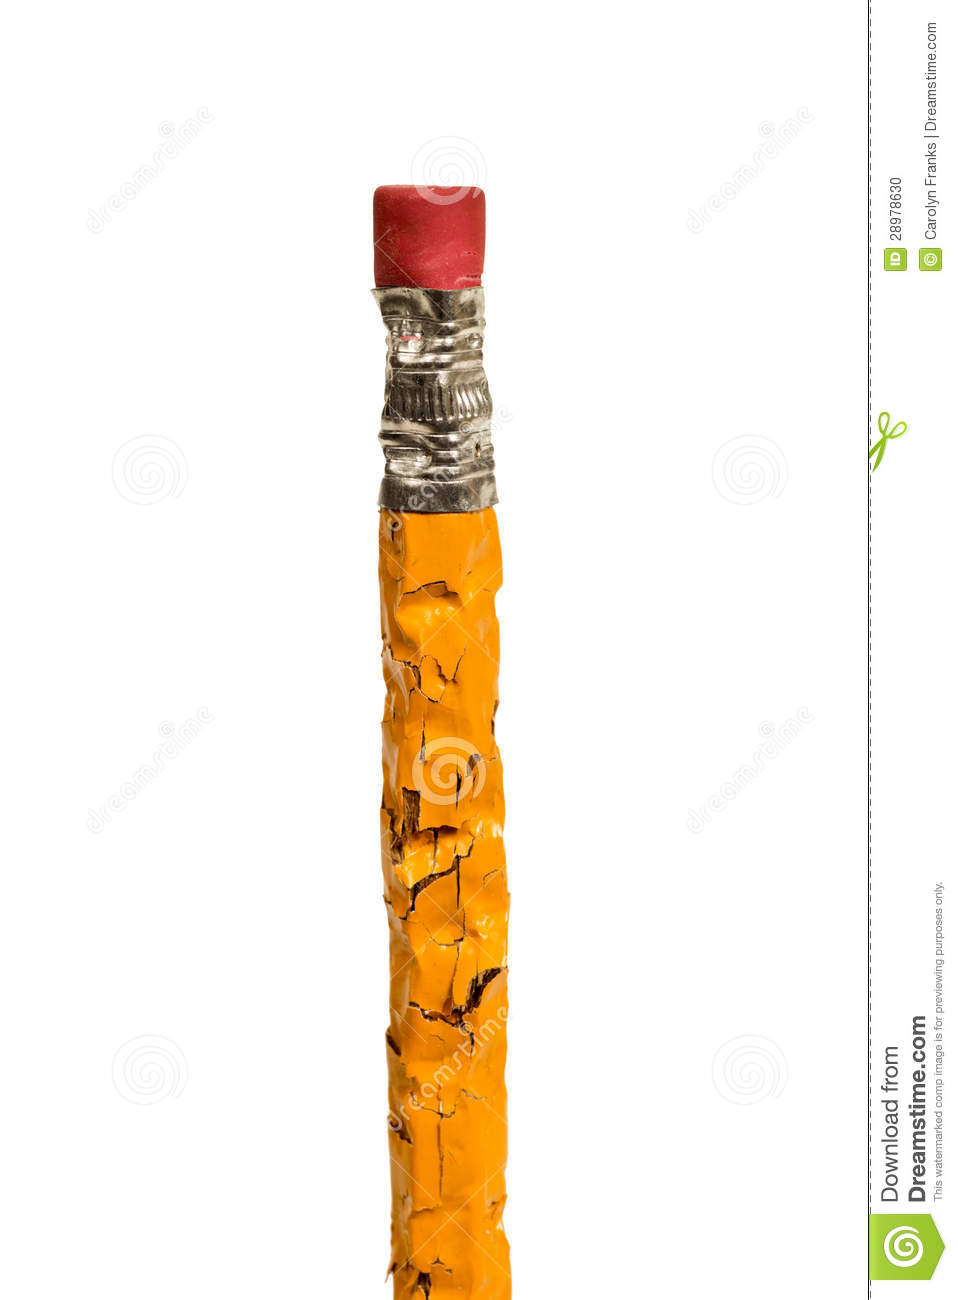 chew pencil photos free royalty free stock photos from dreamstime